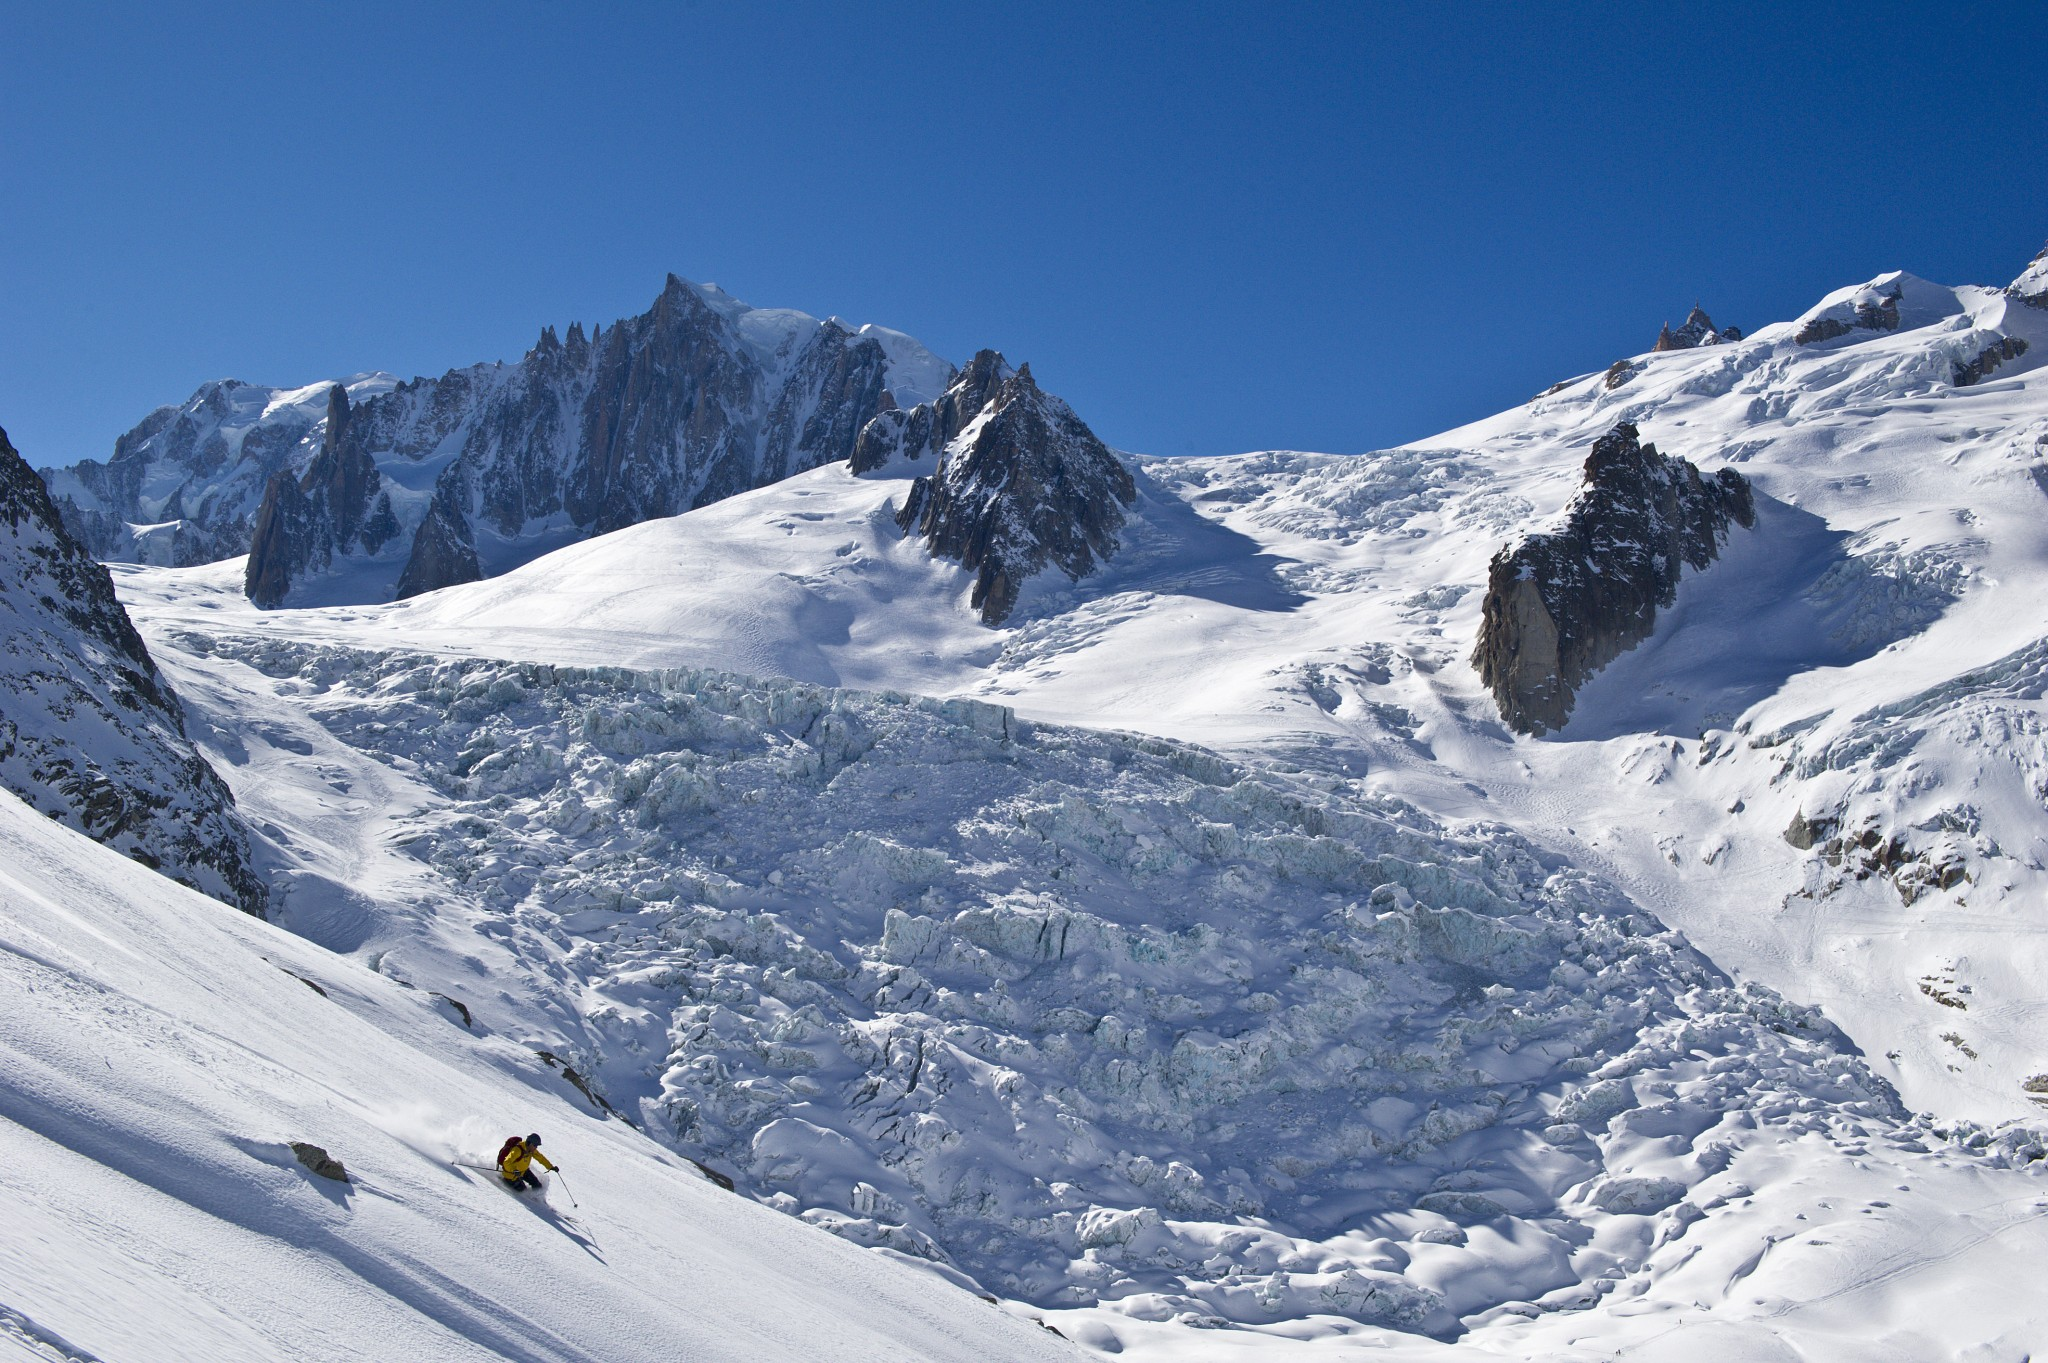 VALLEE BLANCHE CREDIT CHAMONIX MONT BLANC TOURIST OFFICE_and_Eric Berger